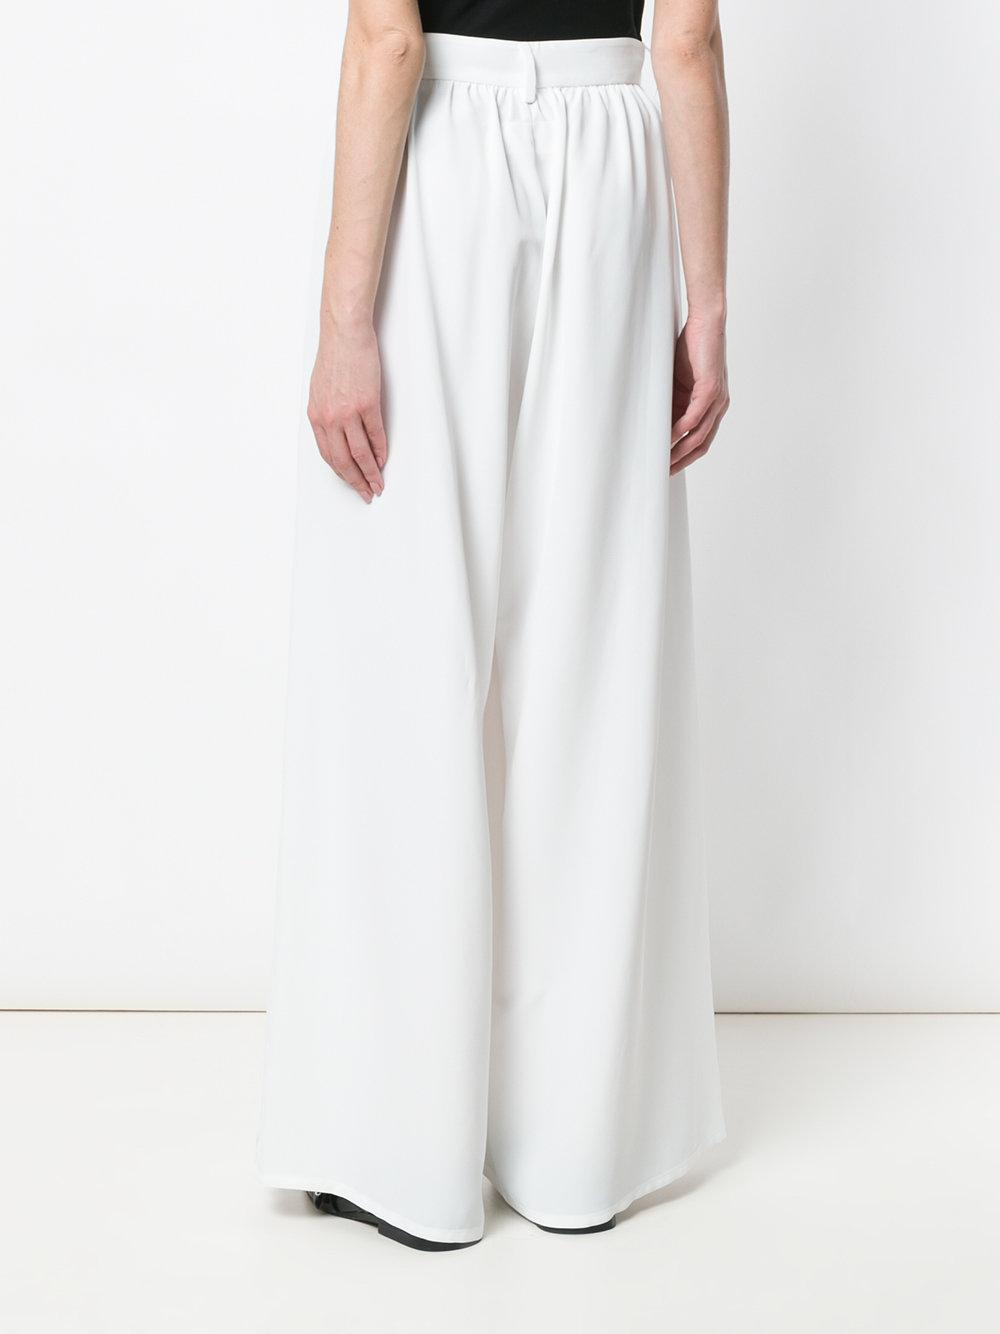 high-waisted palazzo trousers - White Maison Martin Margiela Discount Best Store To Get Popular Sale Online D0JVgLg